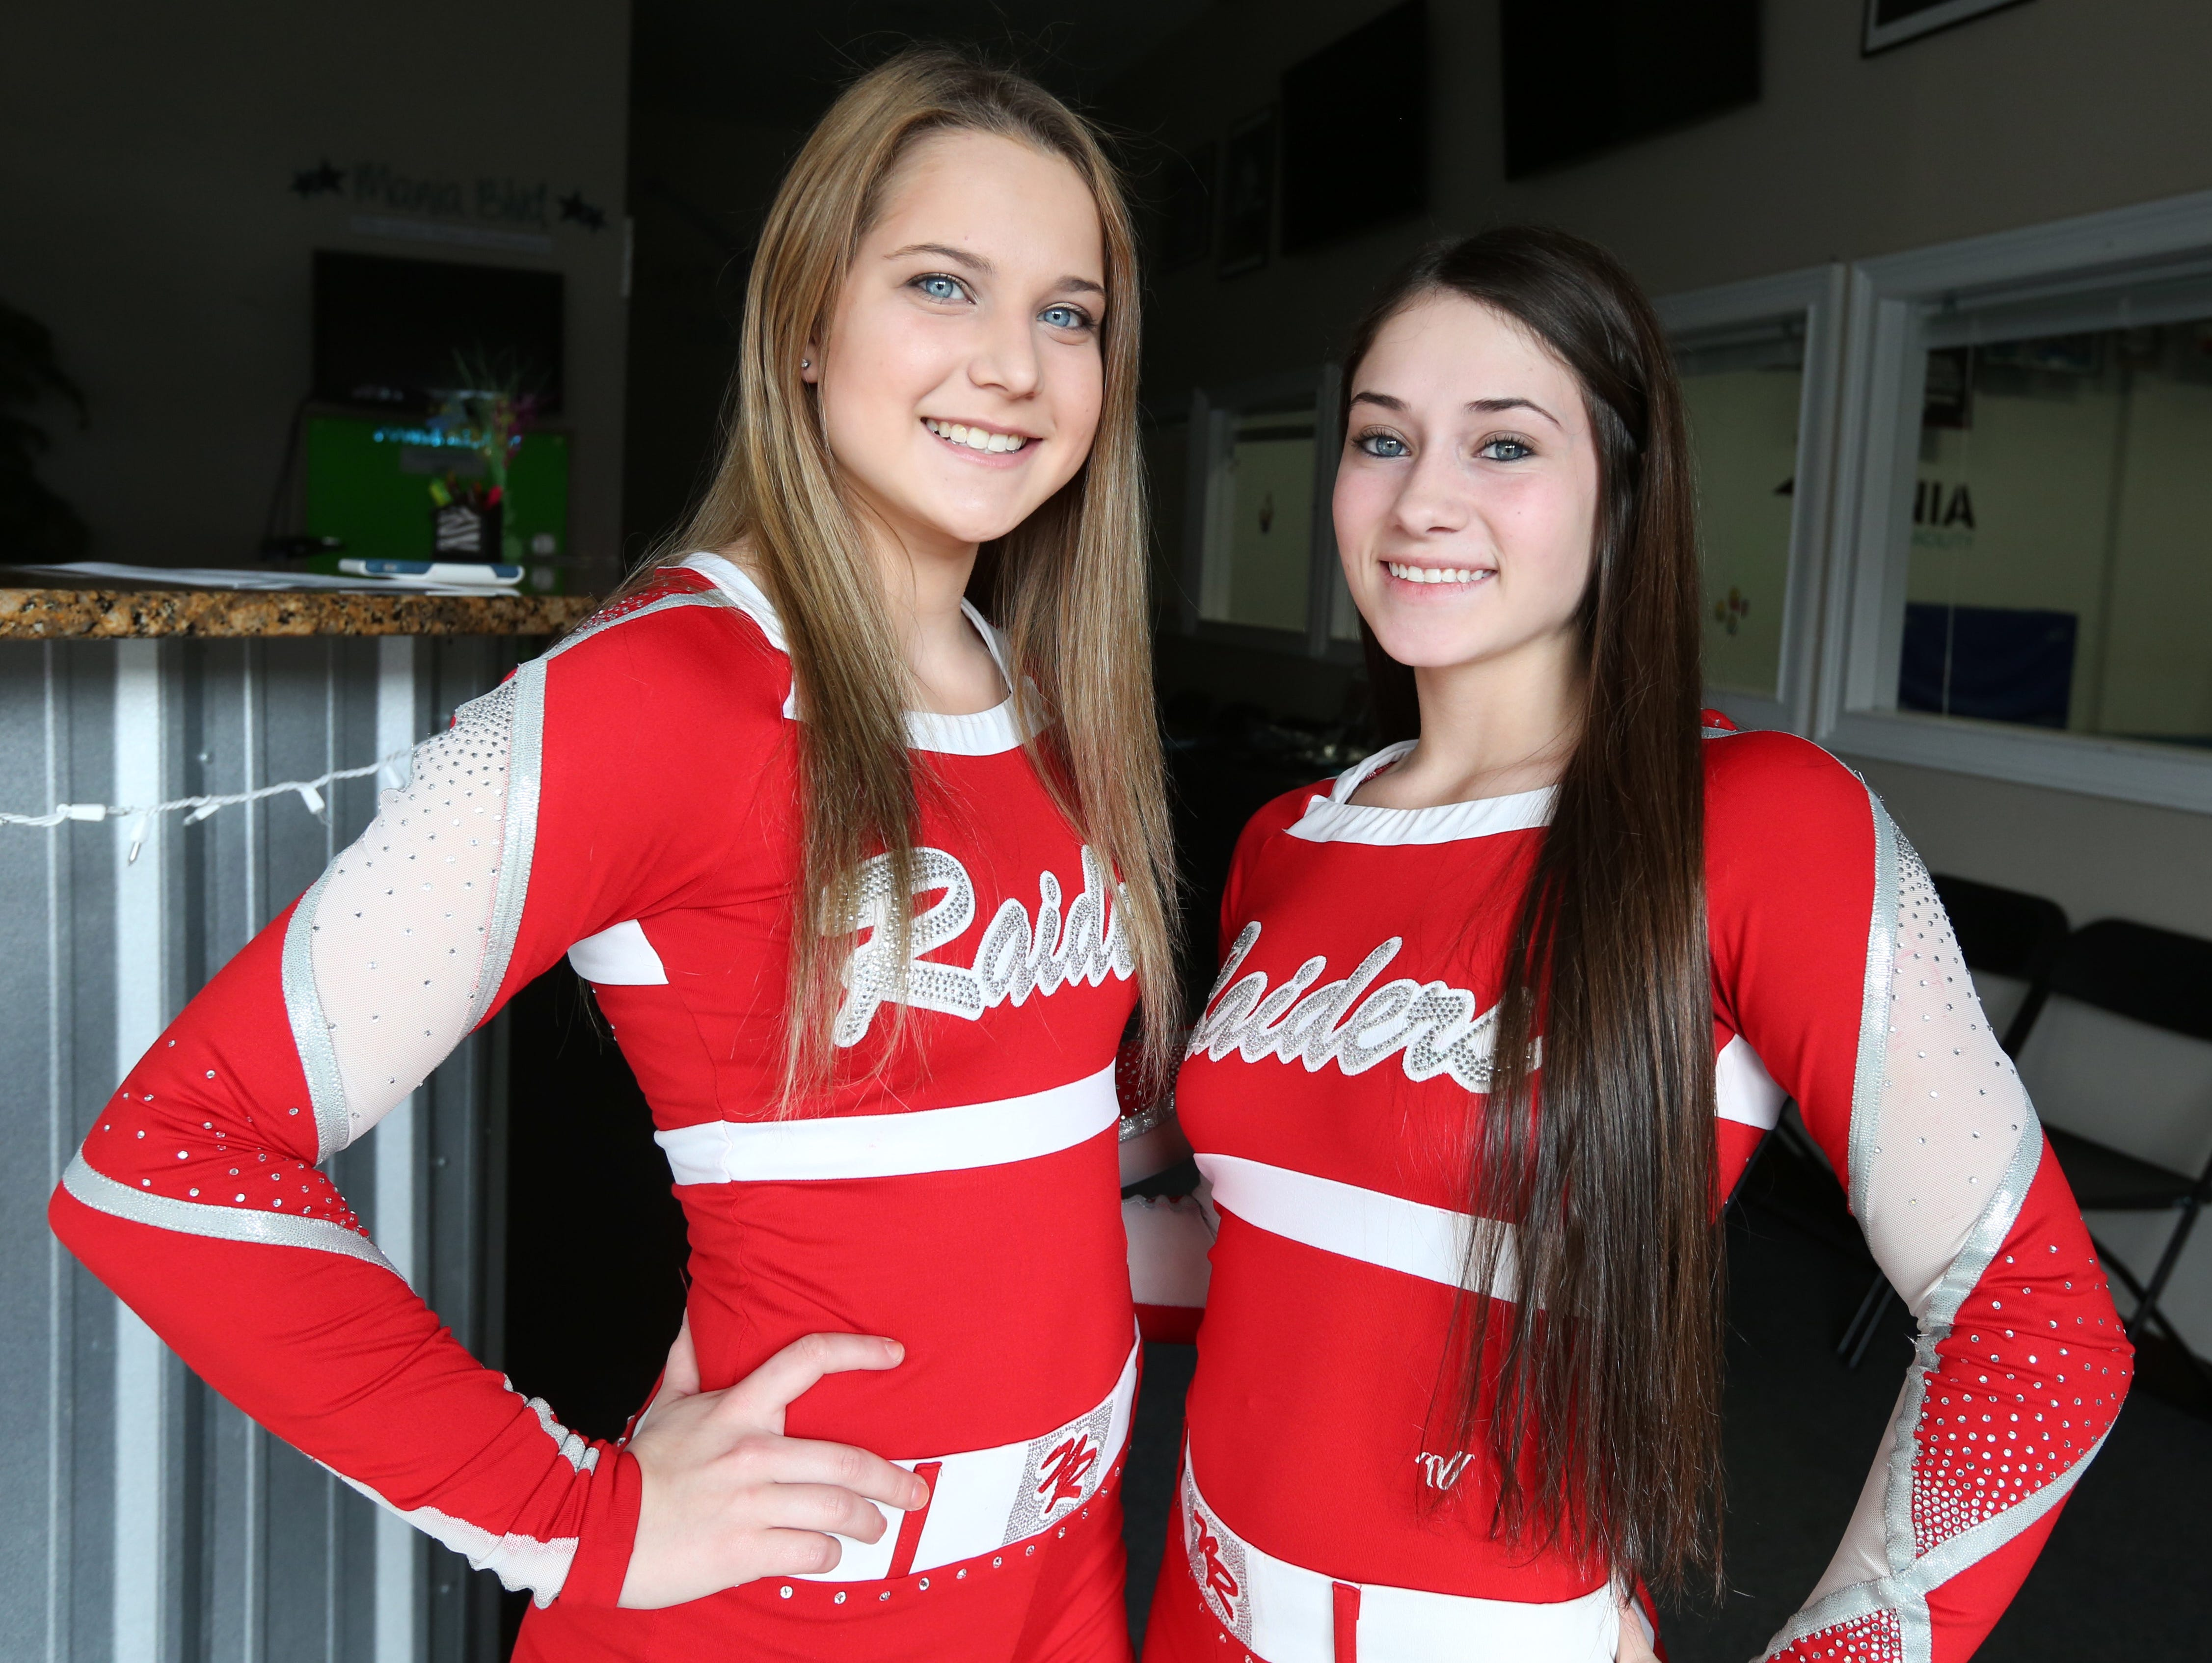 North Rockland's Kaitlyn Garvey, left, and Julia Garrison, Rockland co-cheerleaders of the year, April 1, 2016.